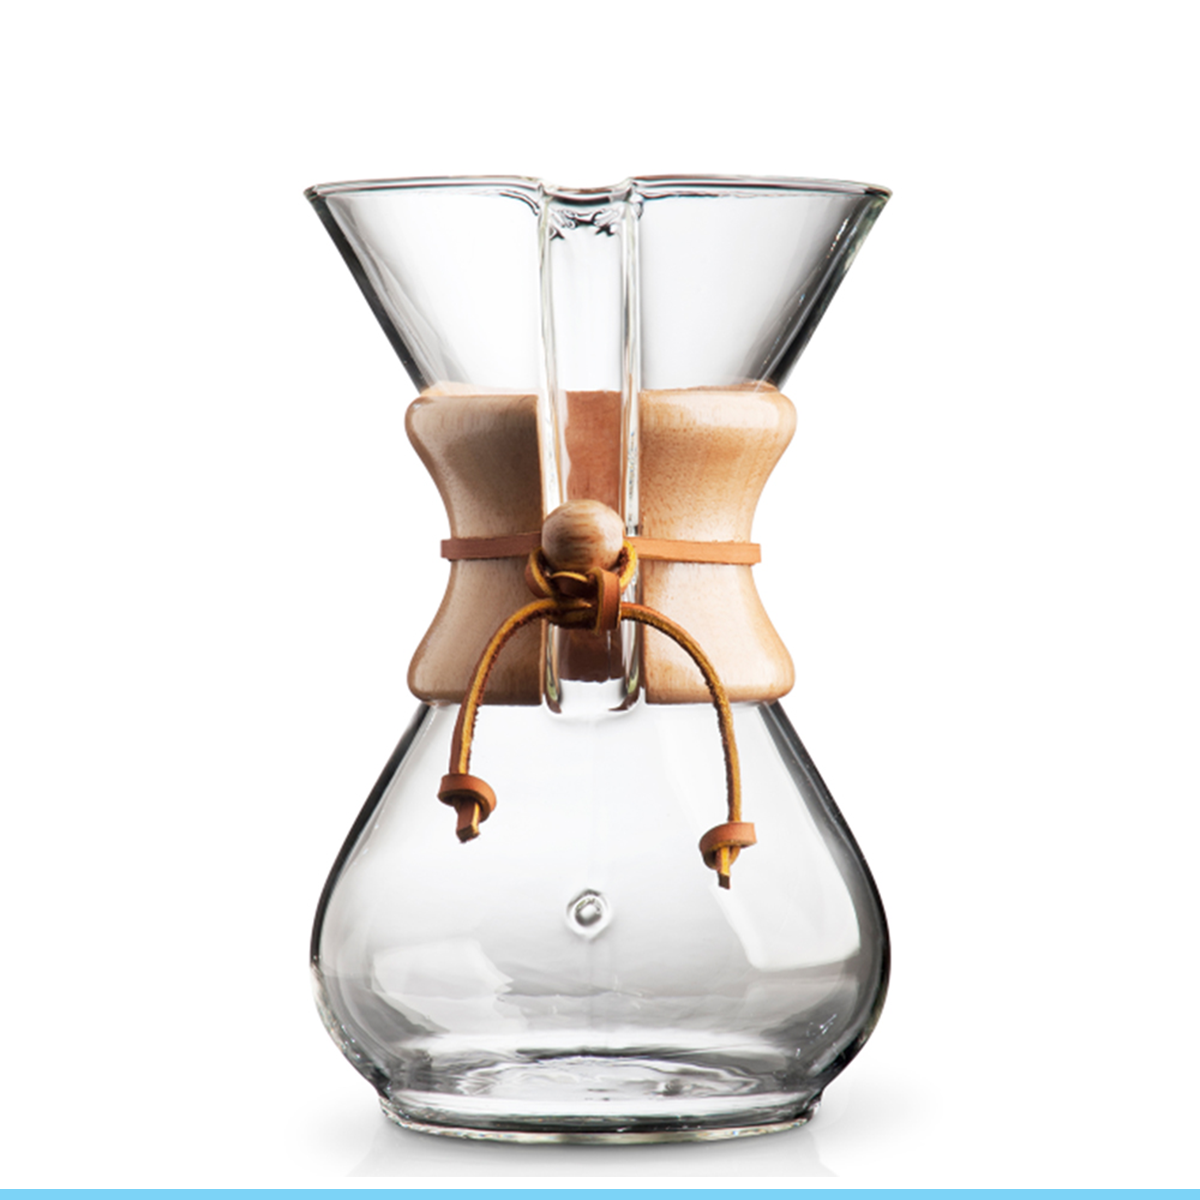 CHEMEX Pour-Over Glass Coffeemaker - Classic Series - 6-Cup